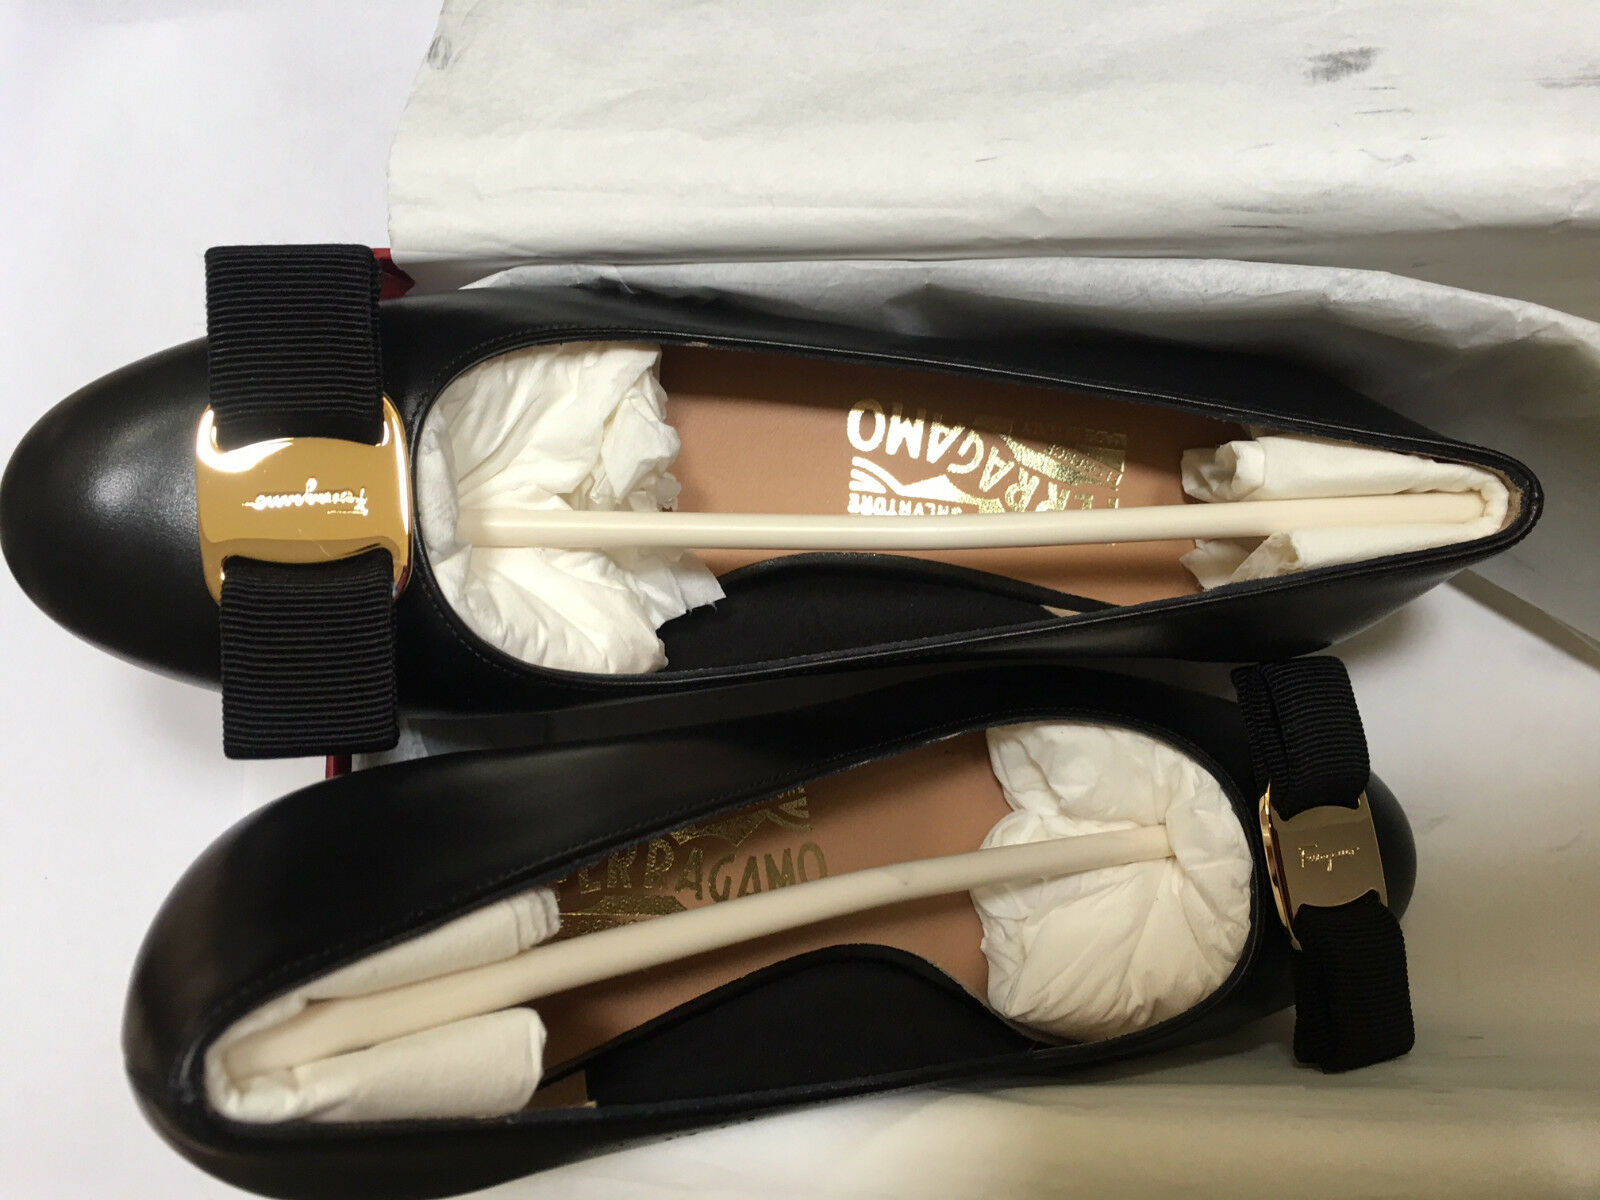 600 Salvatore Salvatore Salvatore Ferragamo Vara Bow Pump Black gold Leather NIB 5 6.5 7 9 10B 4ae99a